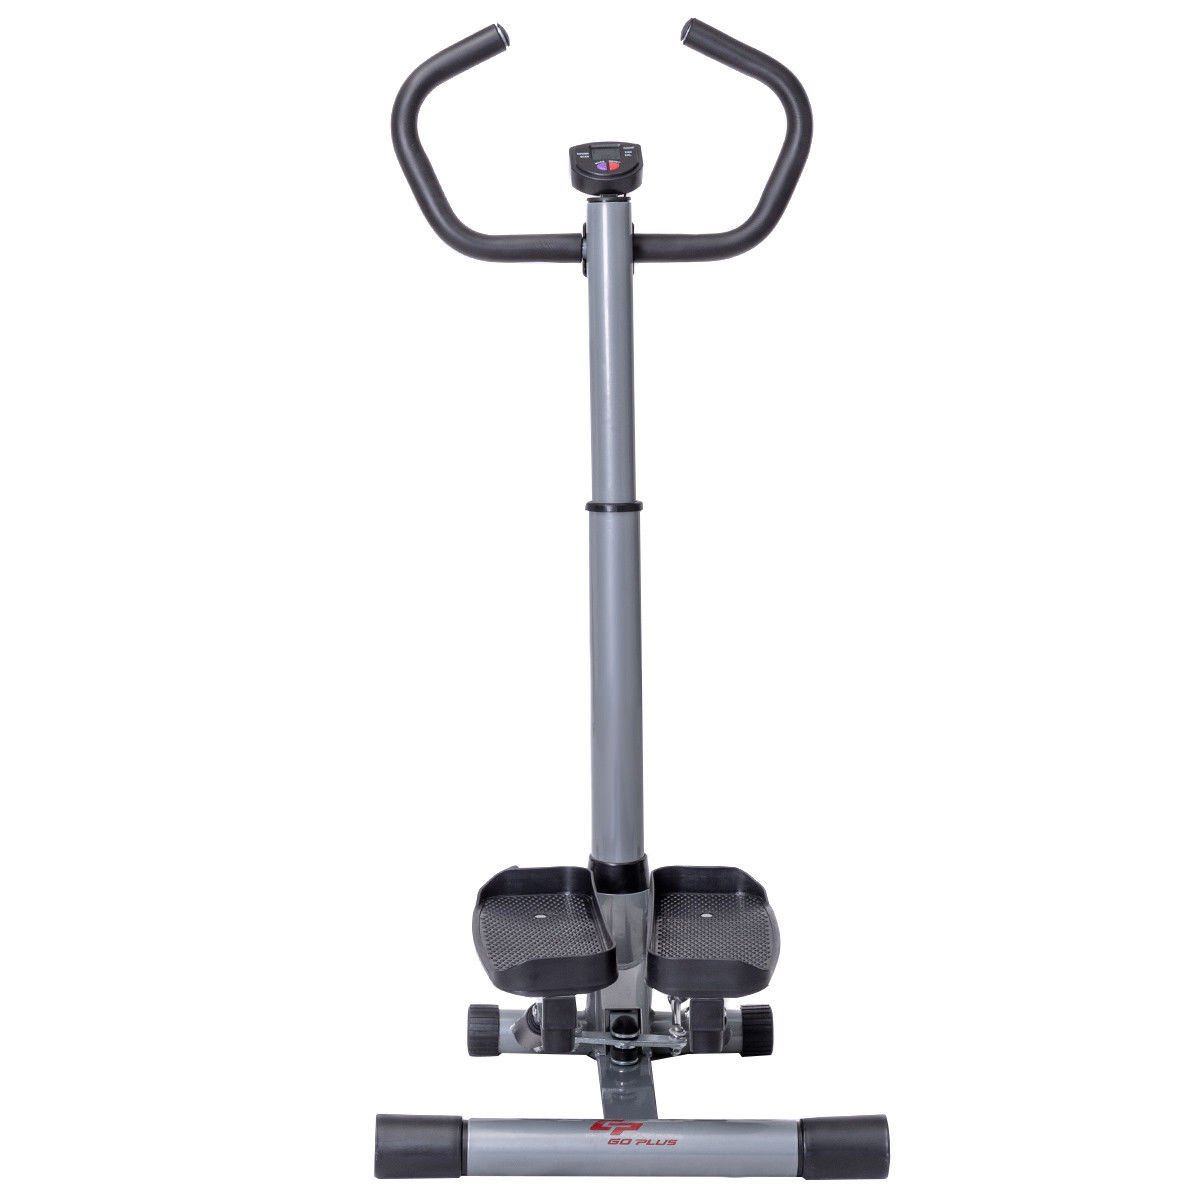 Goplus Stair Stepper Twister 2 in 1 Step Machine Fitness Exercise Workout with Handle Bar and LCD Display Cardio Trainer Stair Climber by Goplus (Image #1)